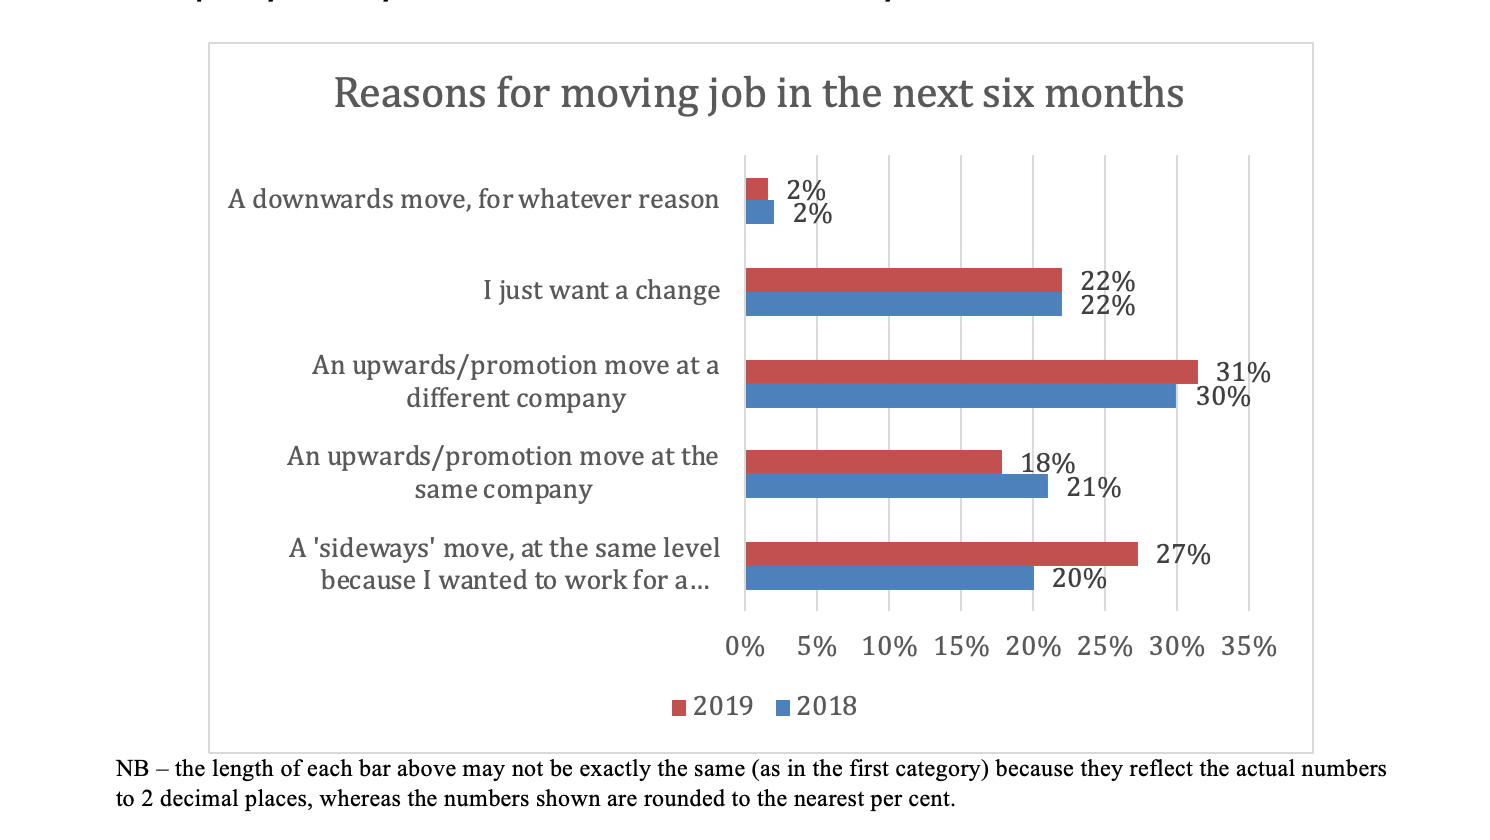 Moving jobs in next six months